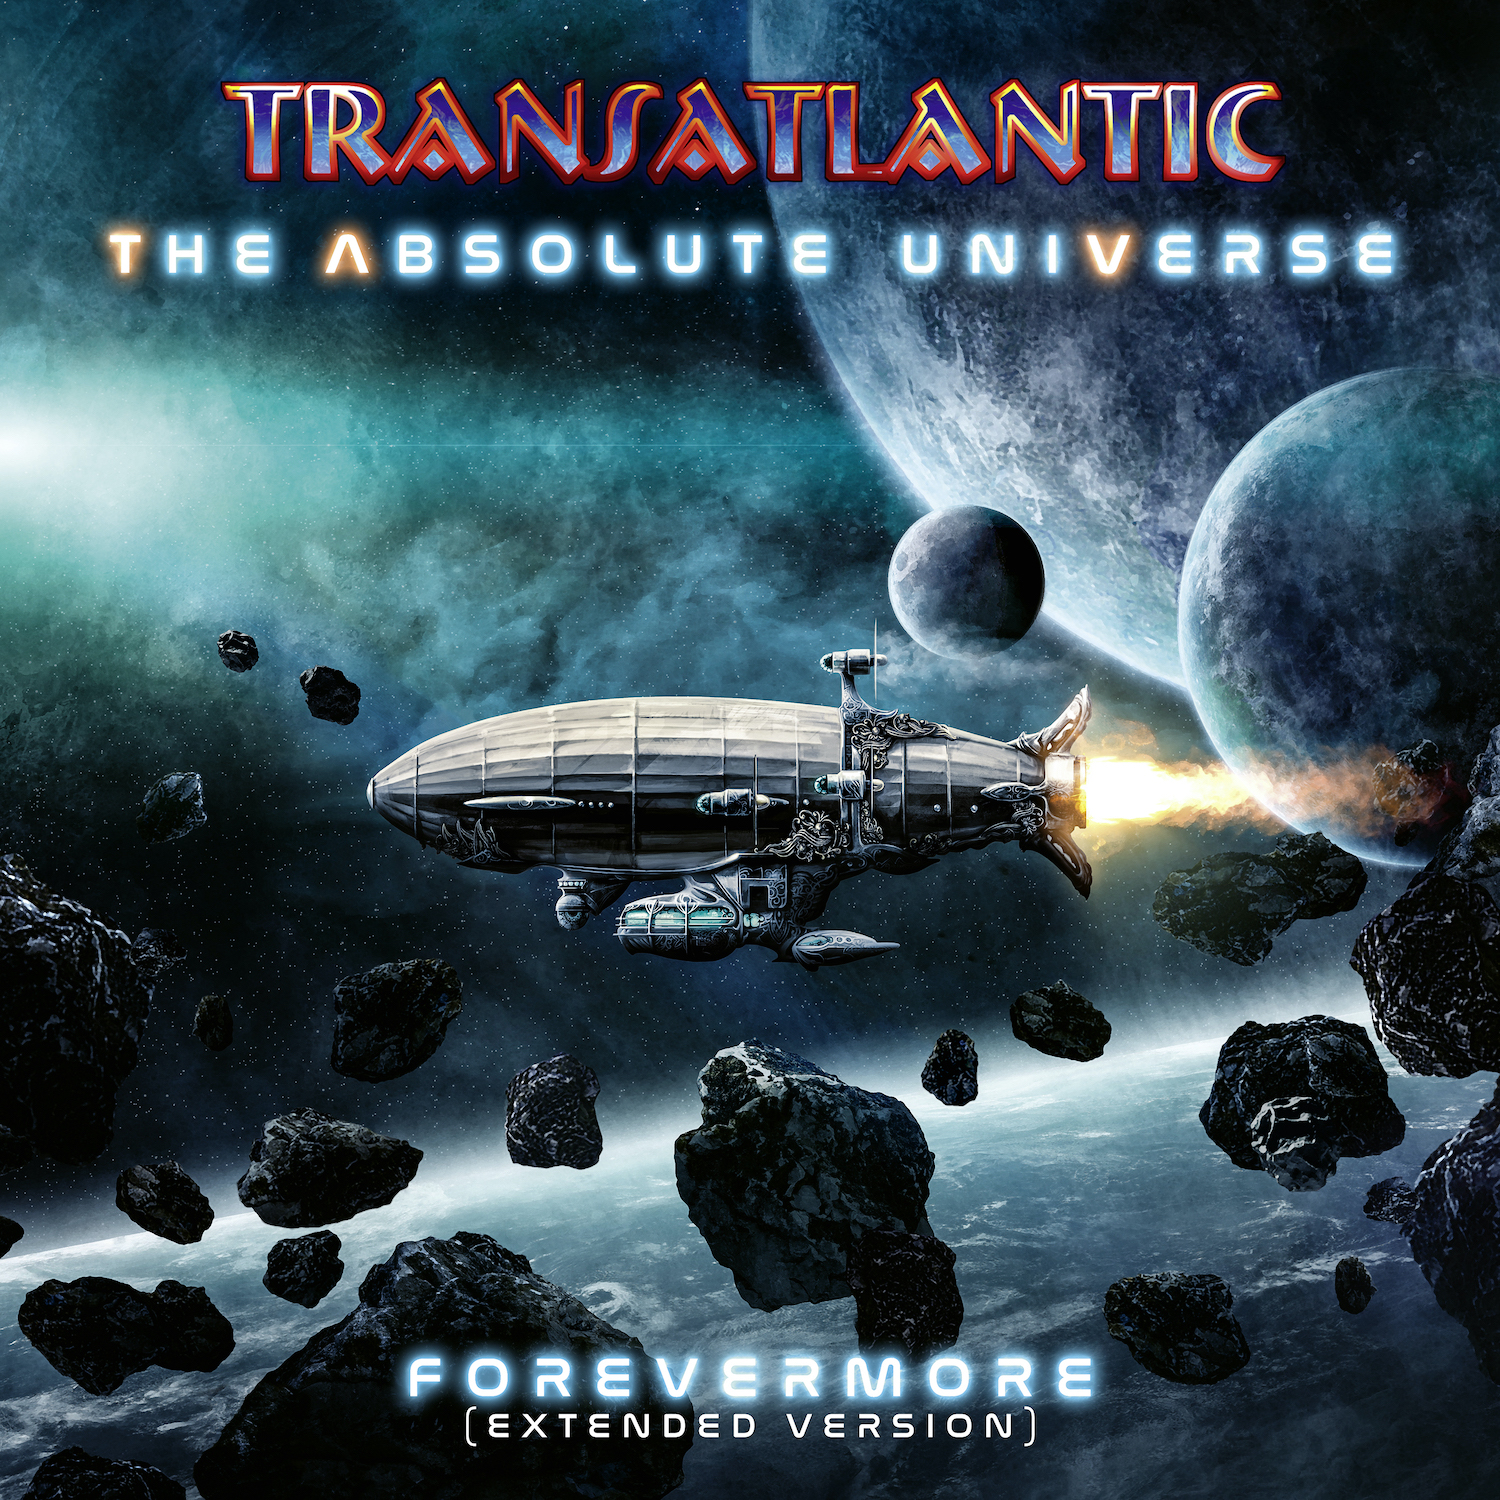 Transatlantic: The Absolute Universe (Forevermore)